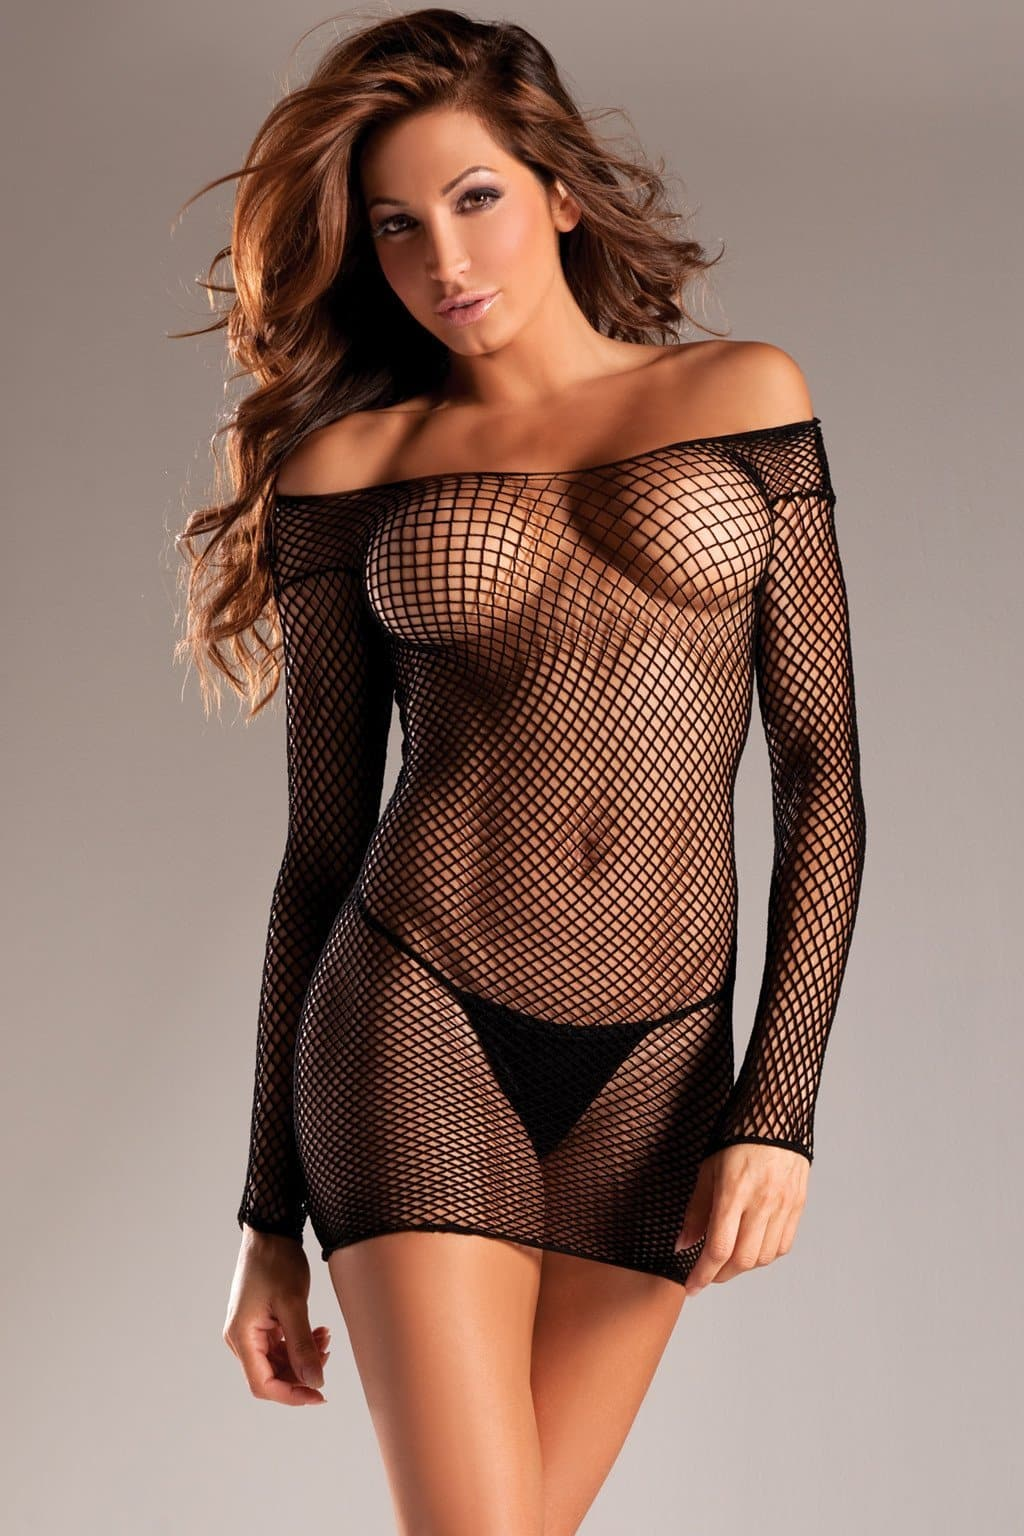 Be Wicked BW609R Red Spandex Net Nylon Dress Fishnet Bodystocking Minidress OS